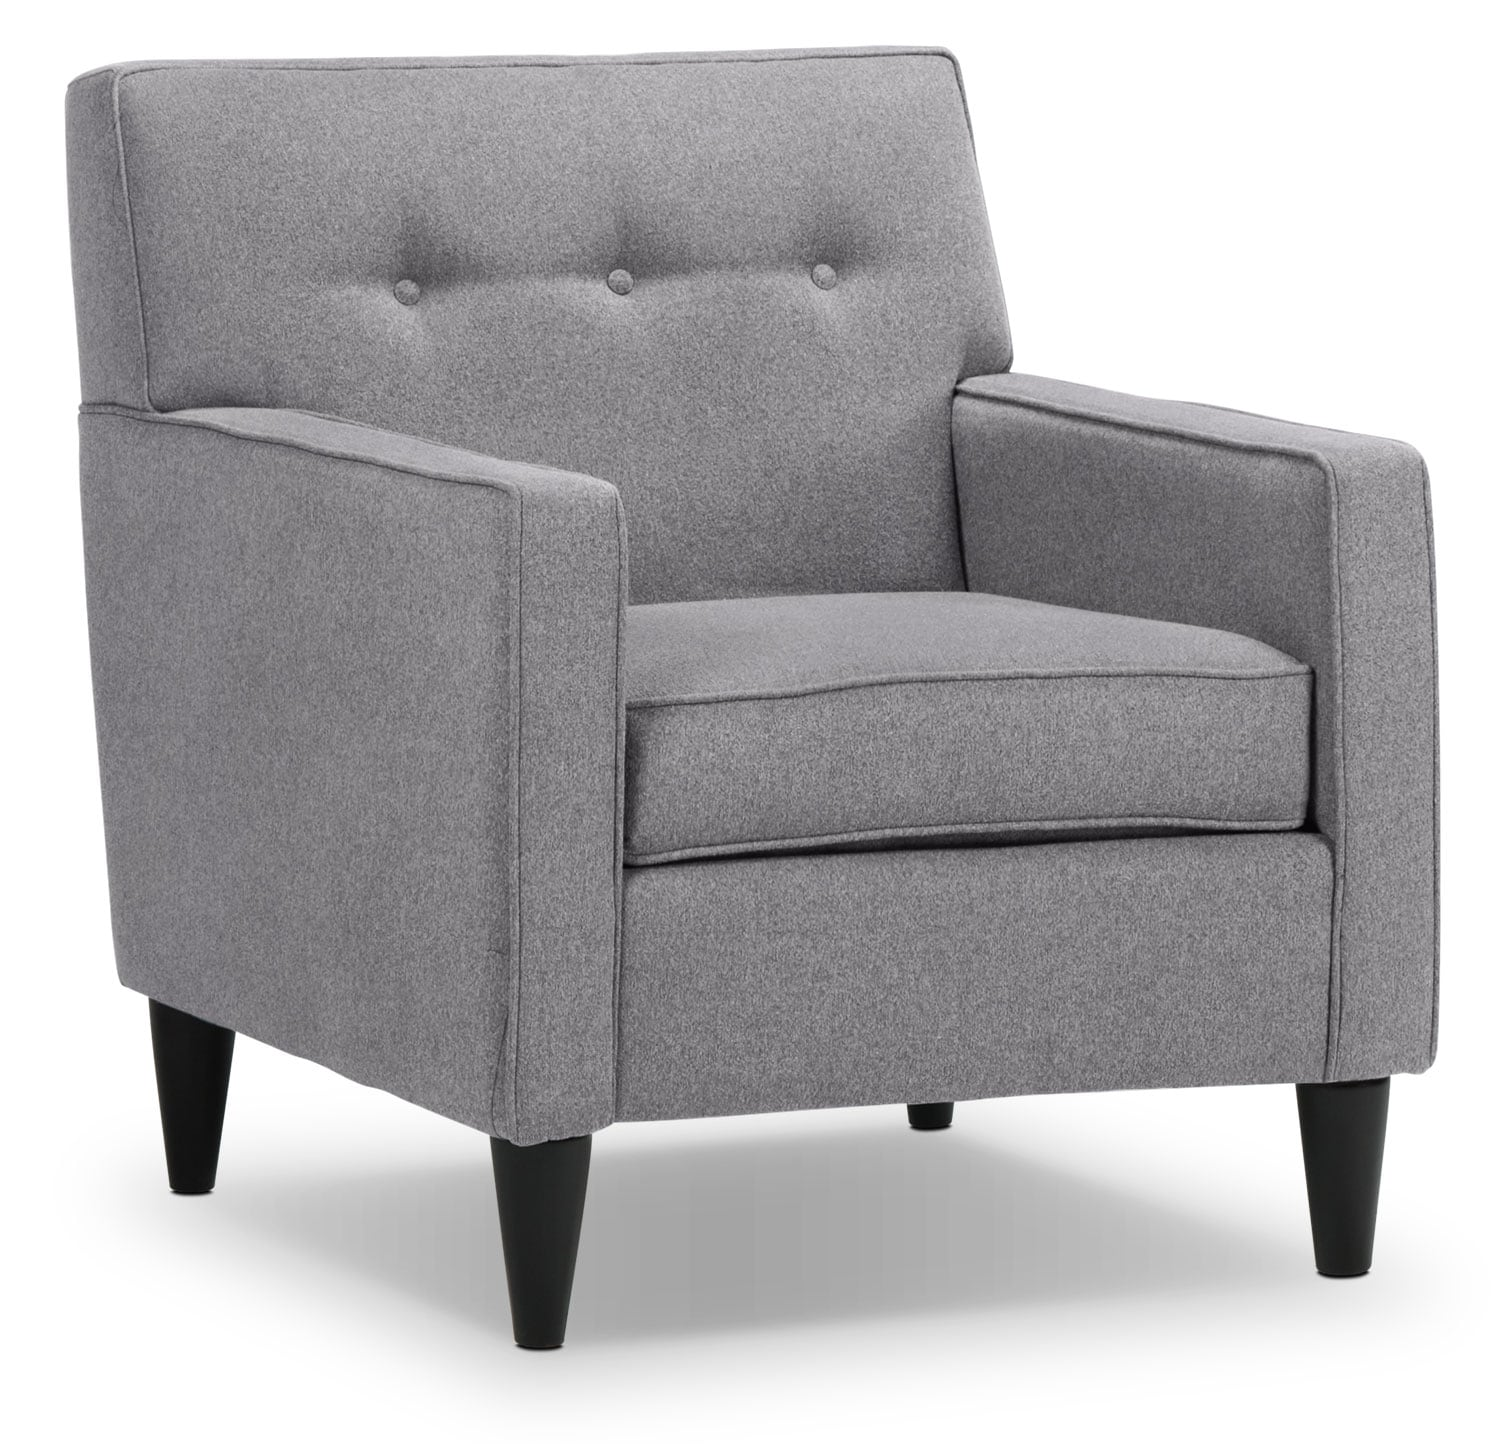 Living Room Furniture - Passerina Chair - Grey